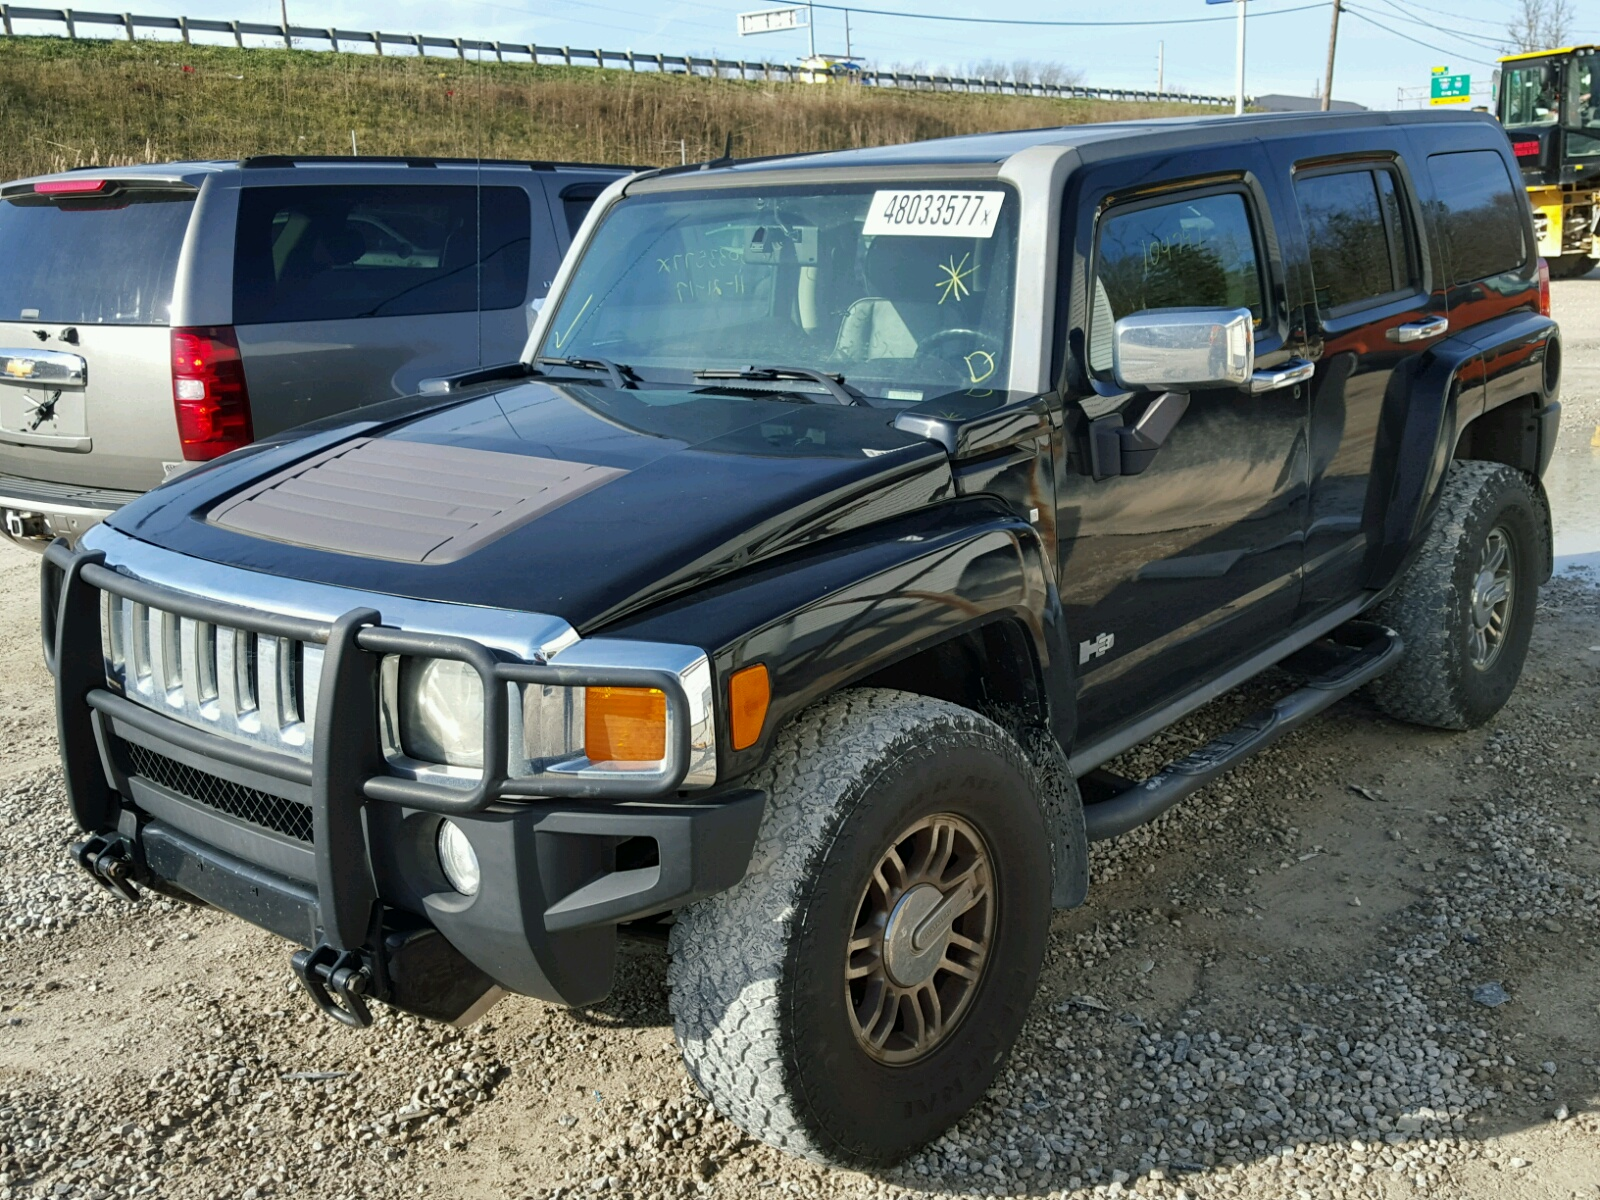 2008 Hummer H3 Alpha for sale at Copart Northfield OH Lot